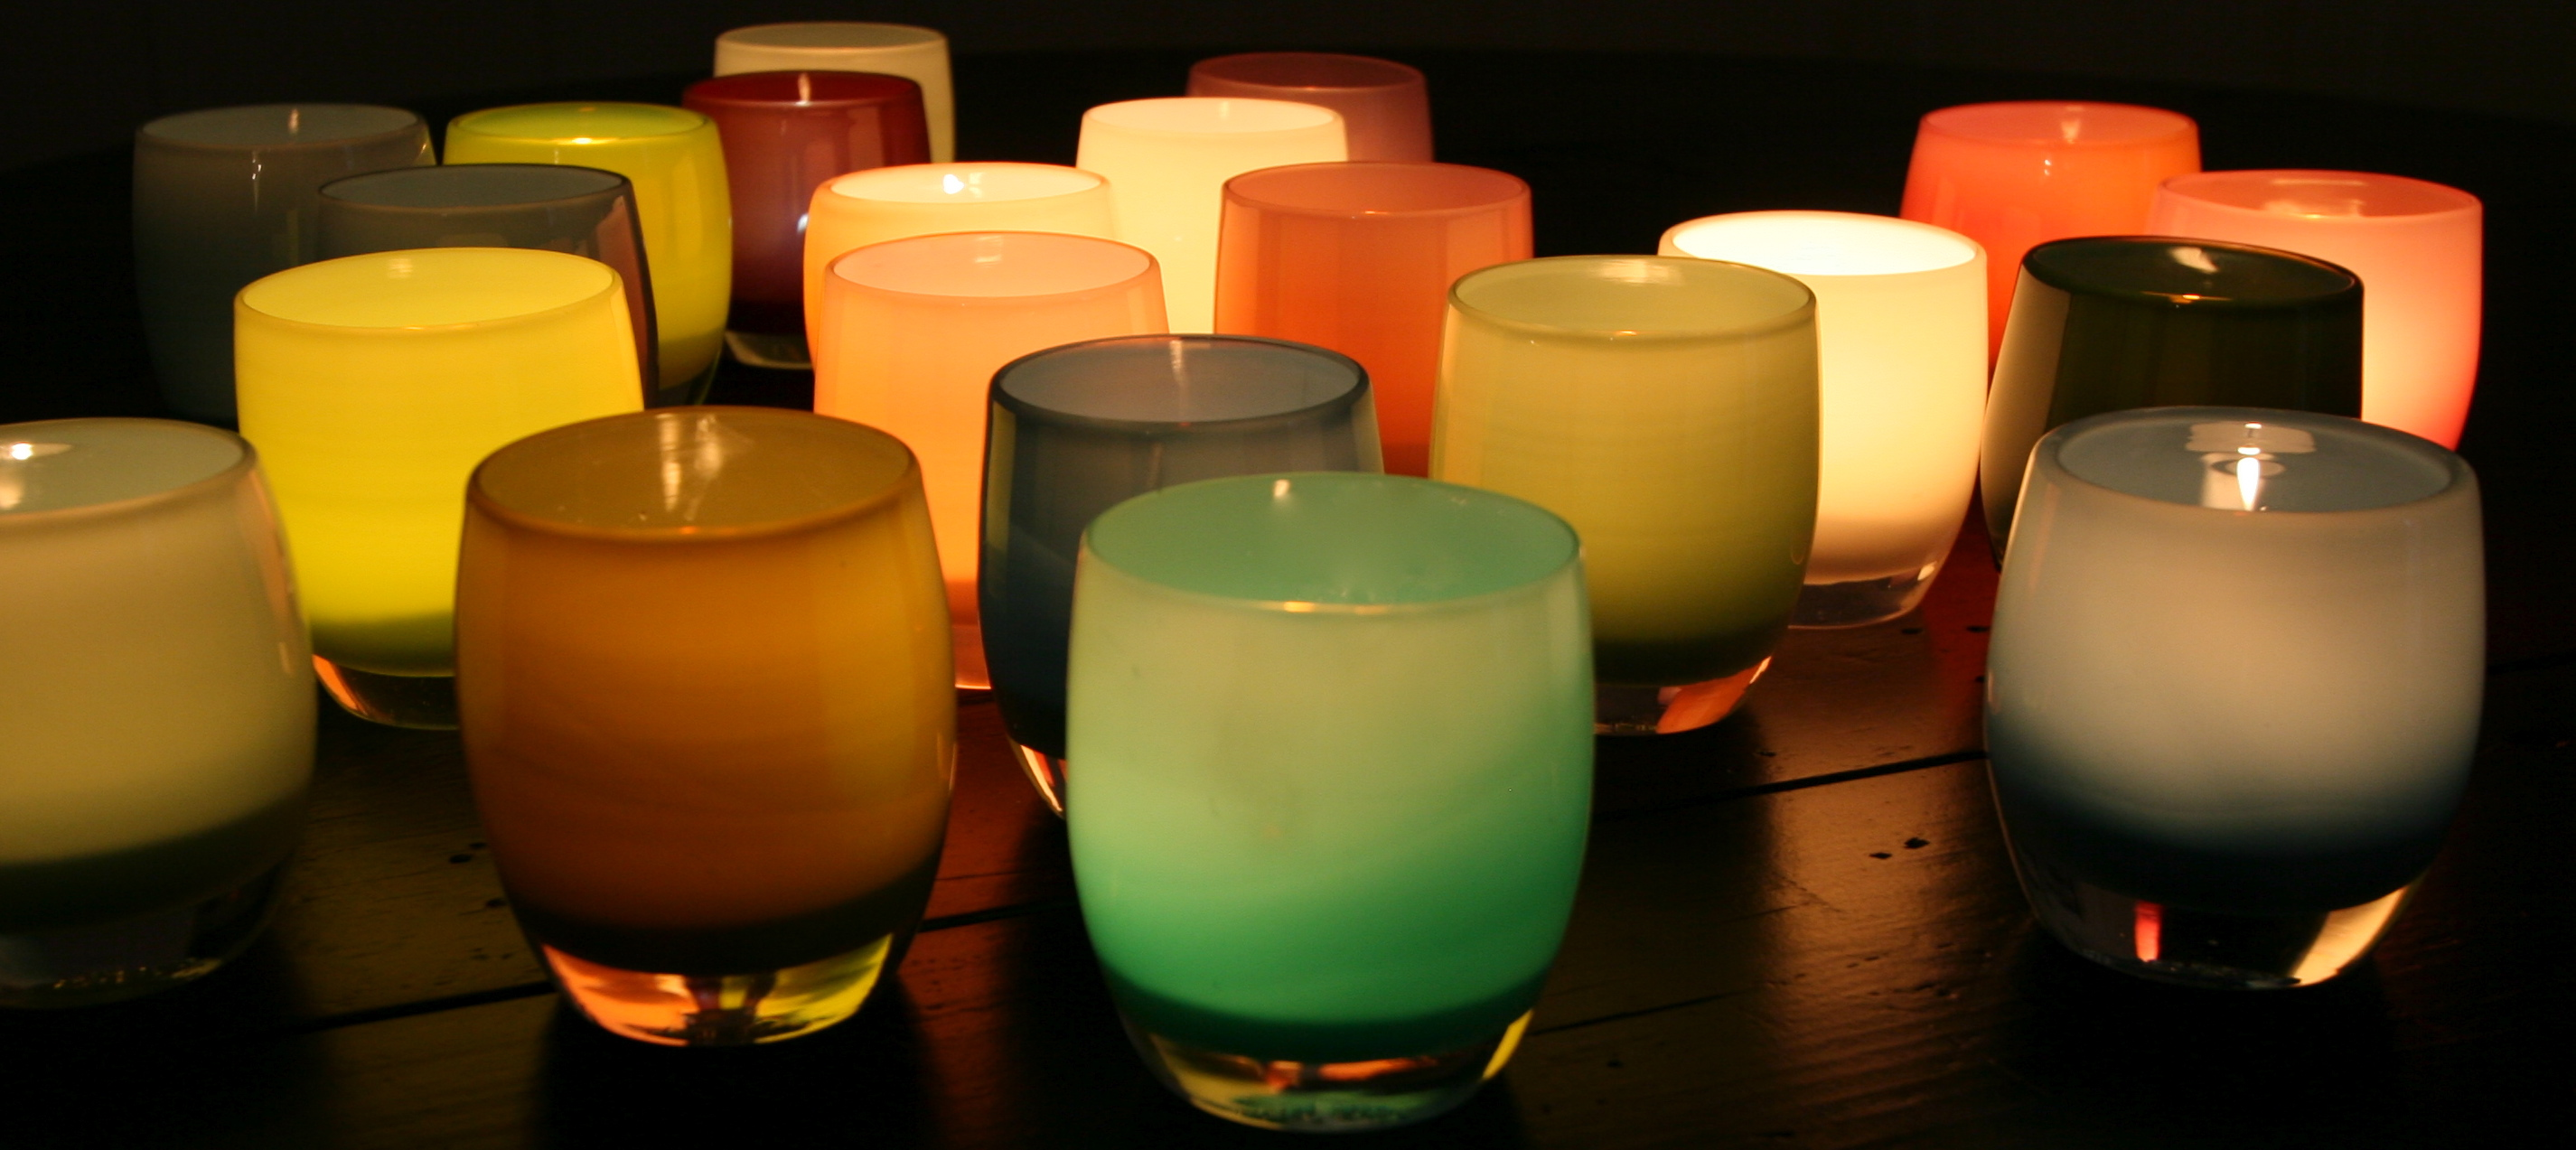 glassybaby, a symbol of hope & light